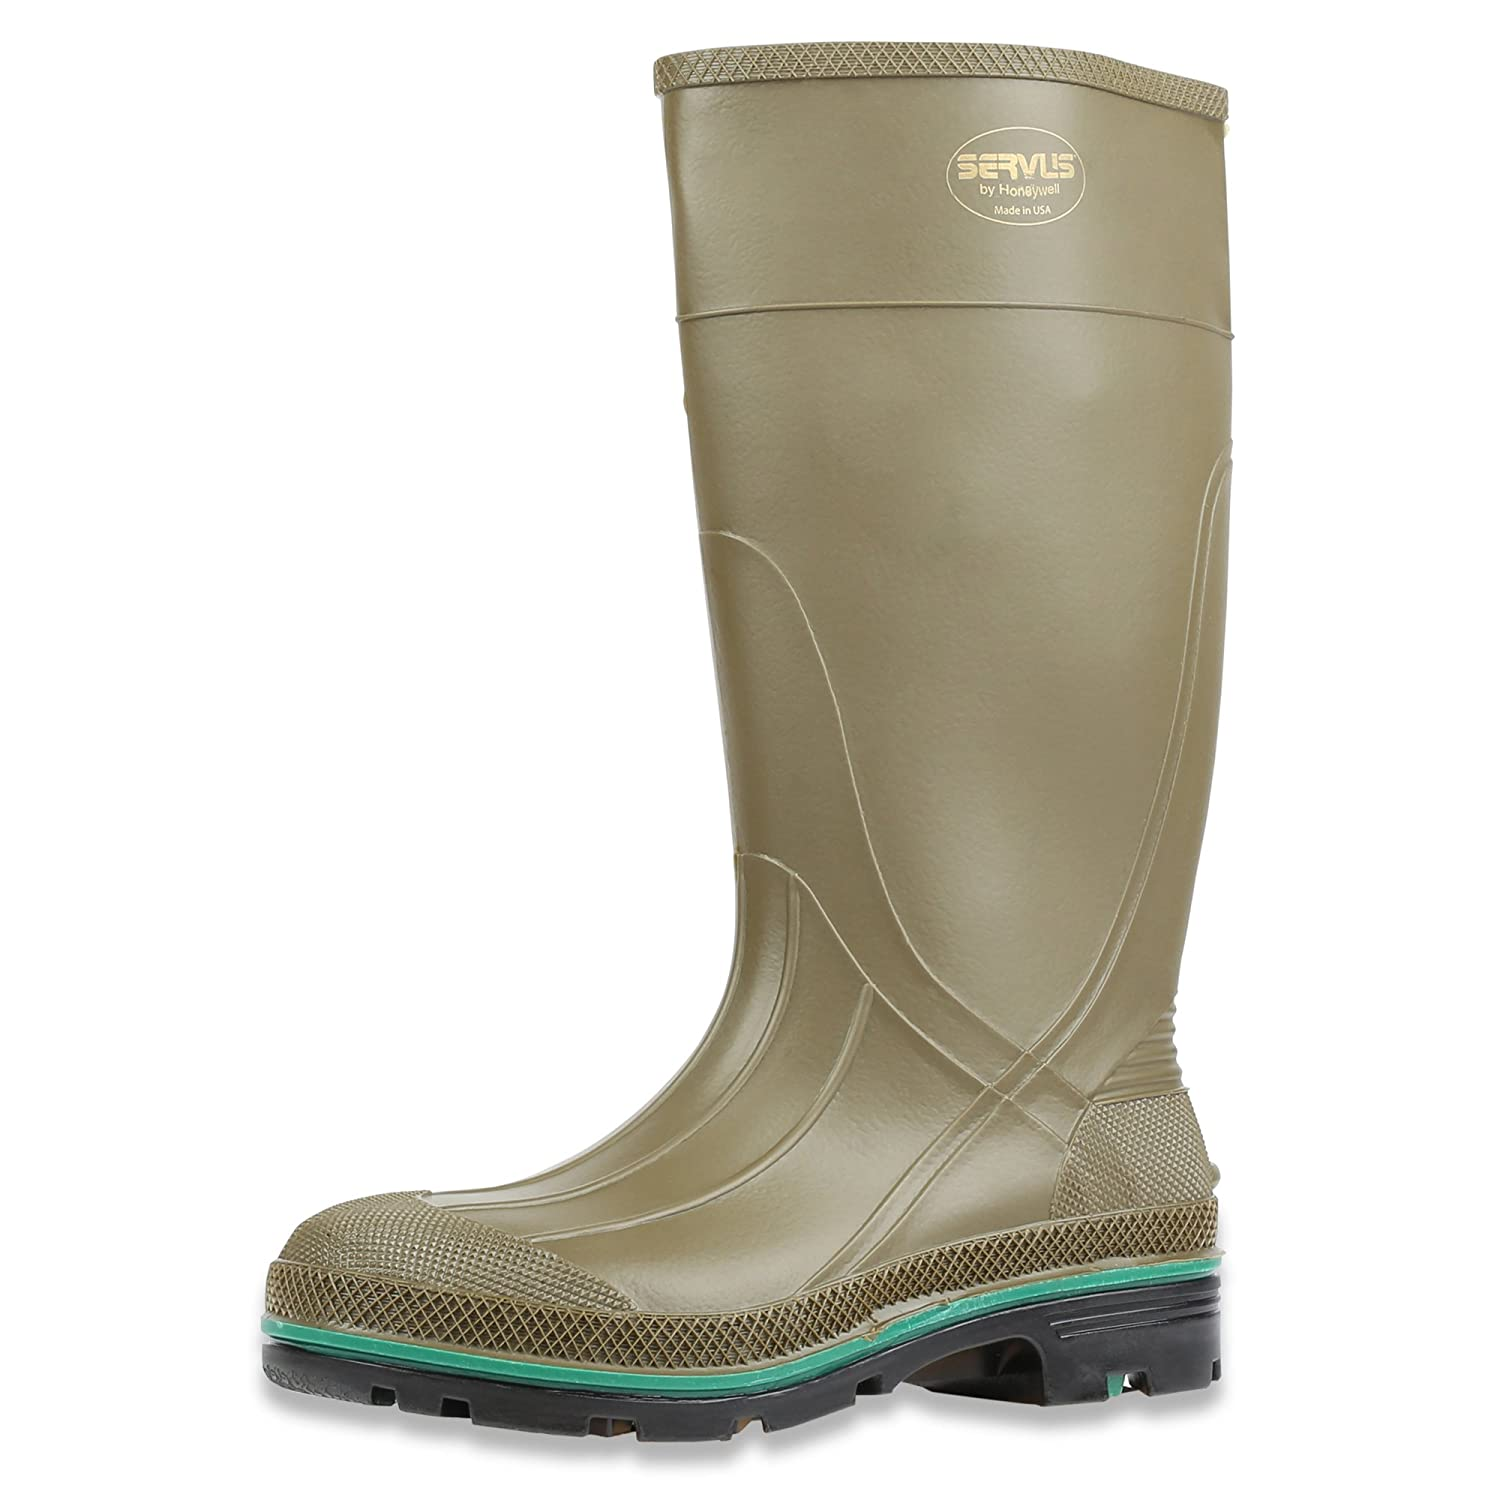 """Servus MAX 15"""" PVC Chemical-Resistant Soft Toe Men's Work Boots, Olive, Green & Brown (75120), Size 8"""